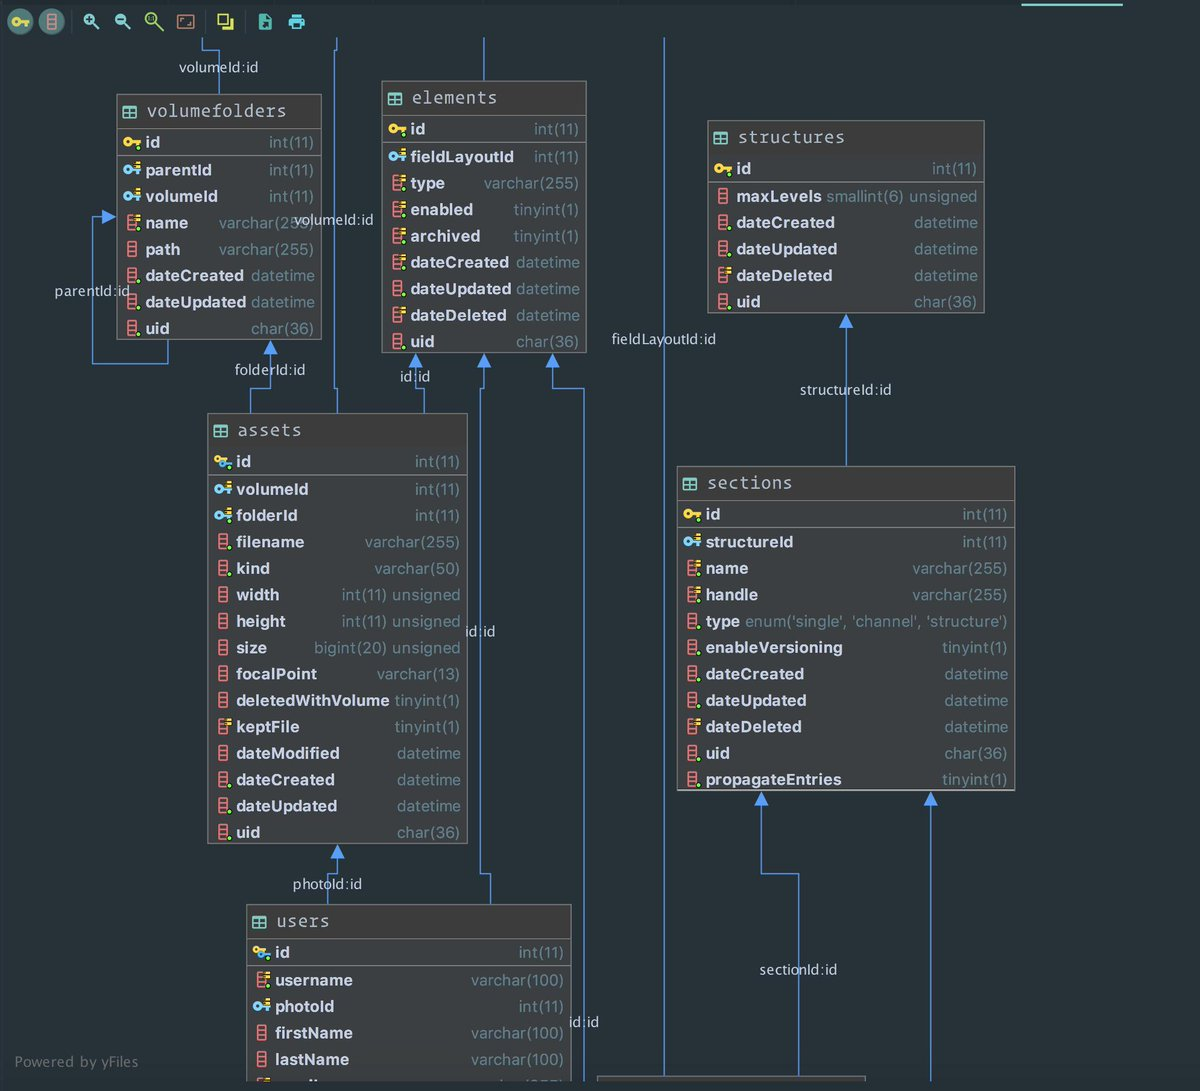 hight resolution of  is database visualization via right clicking on the database then choose diagrams show diagram php phpstorm craftcmspic twitter com yhaqqx8l3i